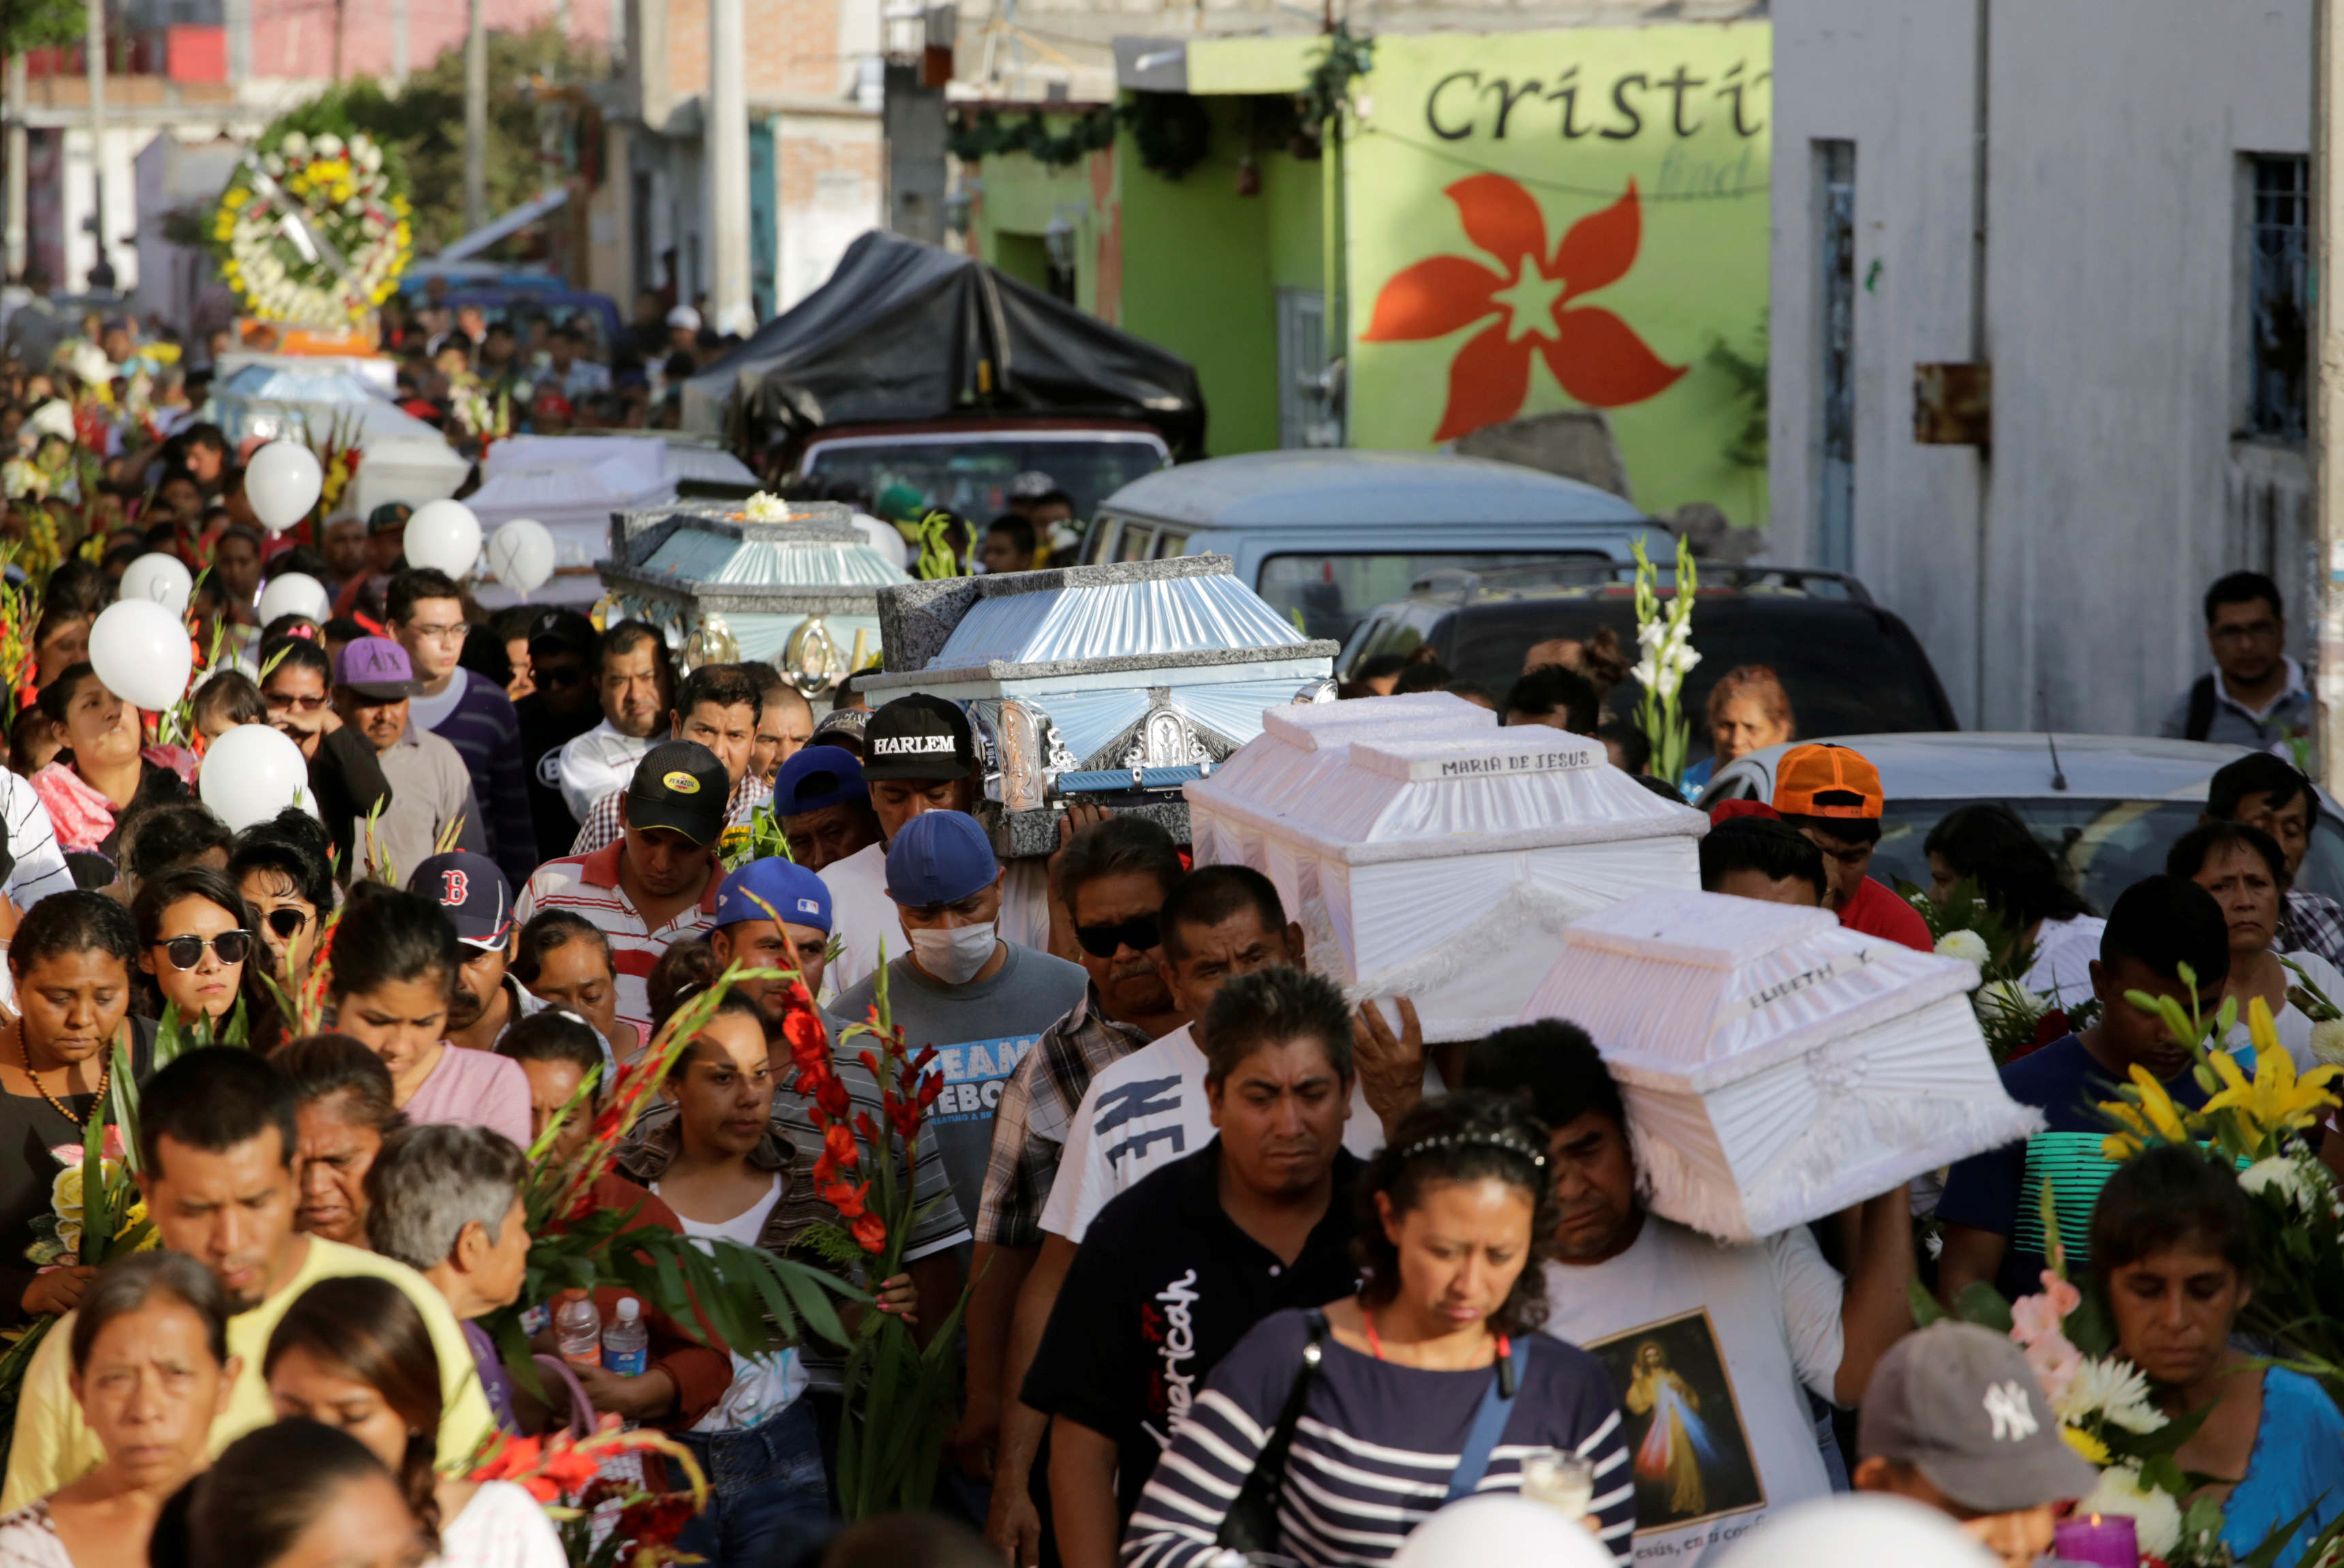 People accompany caskets, holding the bodies of victims who died in an earthquake, through the streets in Atzala, on the outskirts of Puebla, Mexico September 20, 2017.